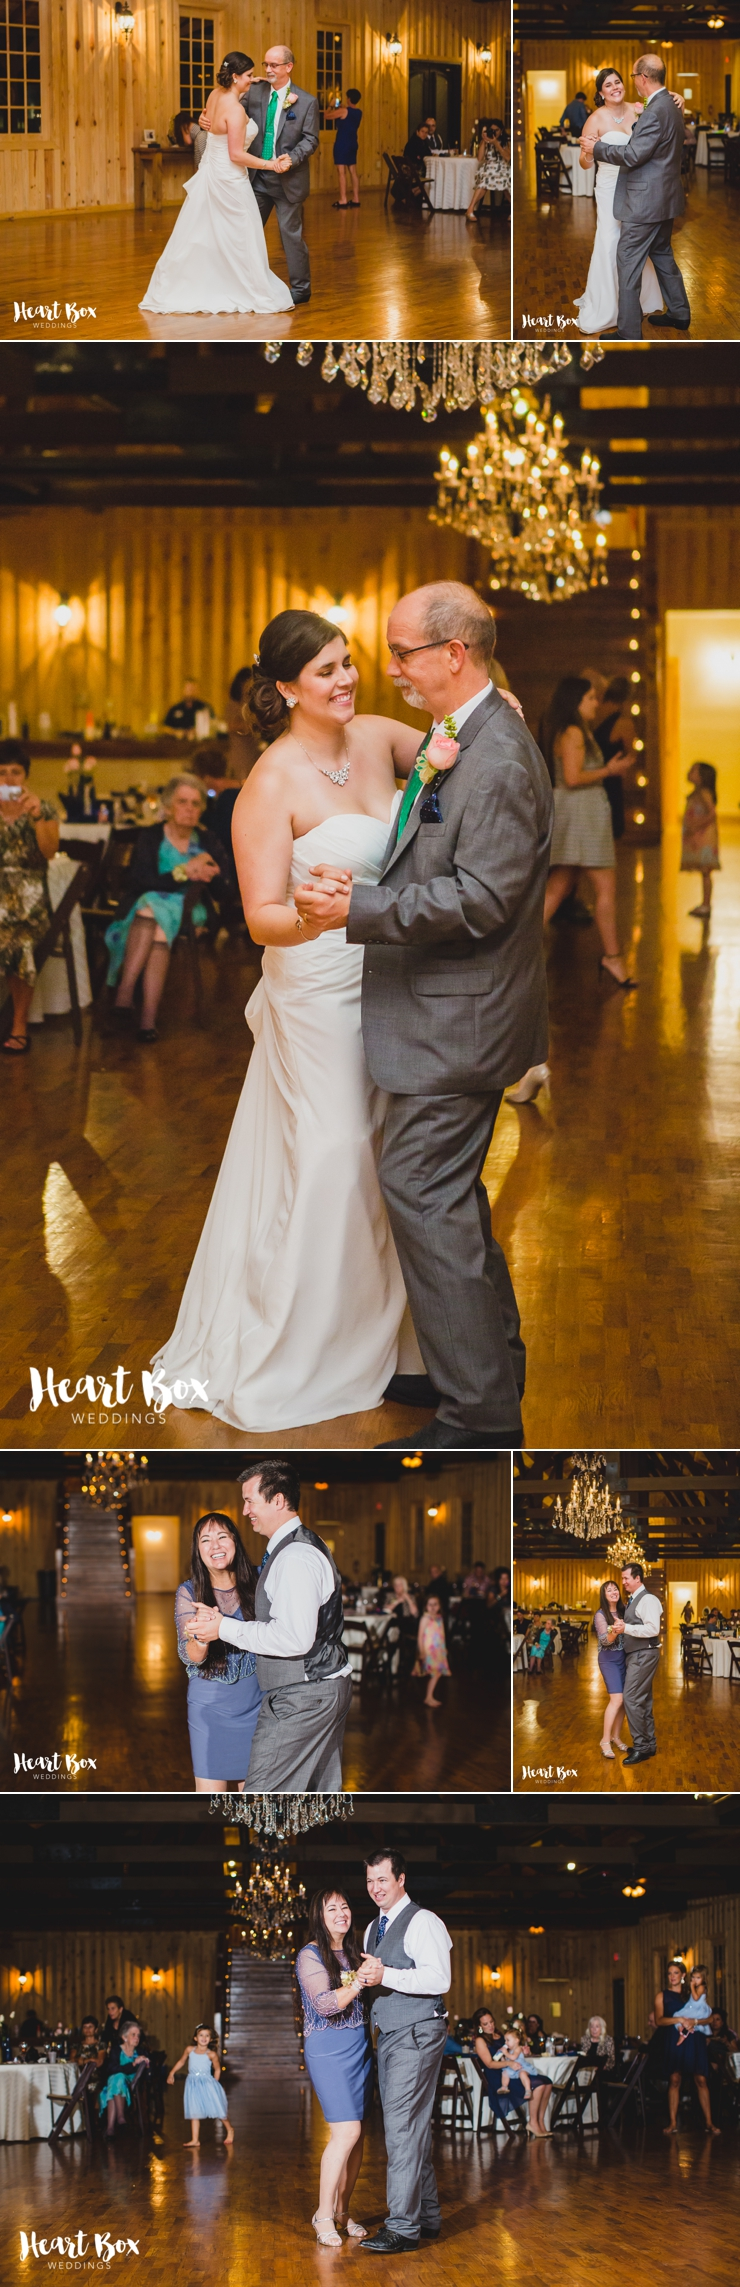 Waggoner Wedding Collages 17.jpg